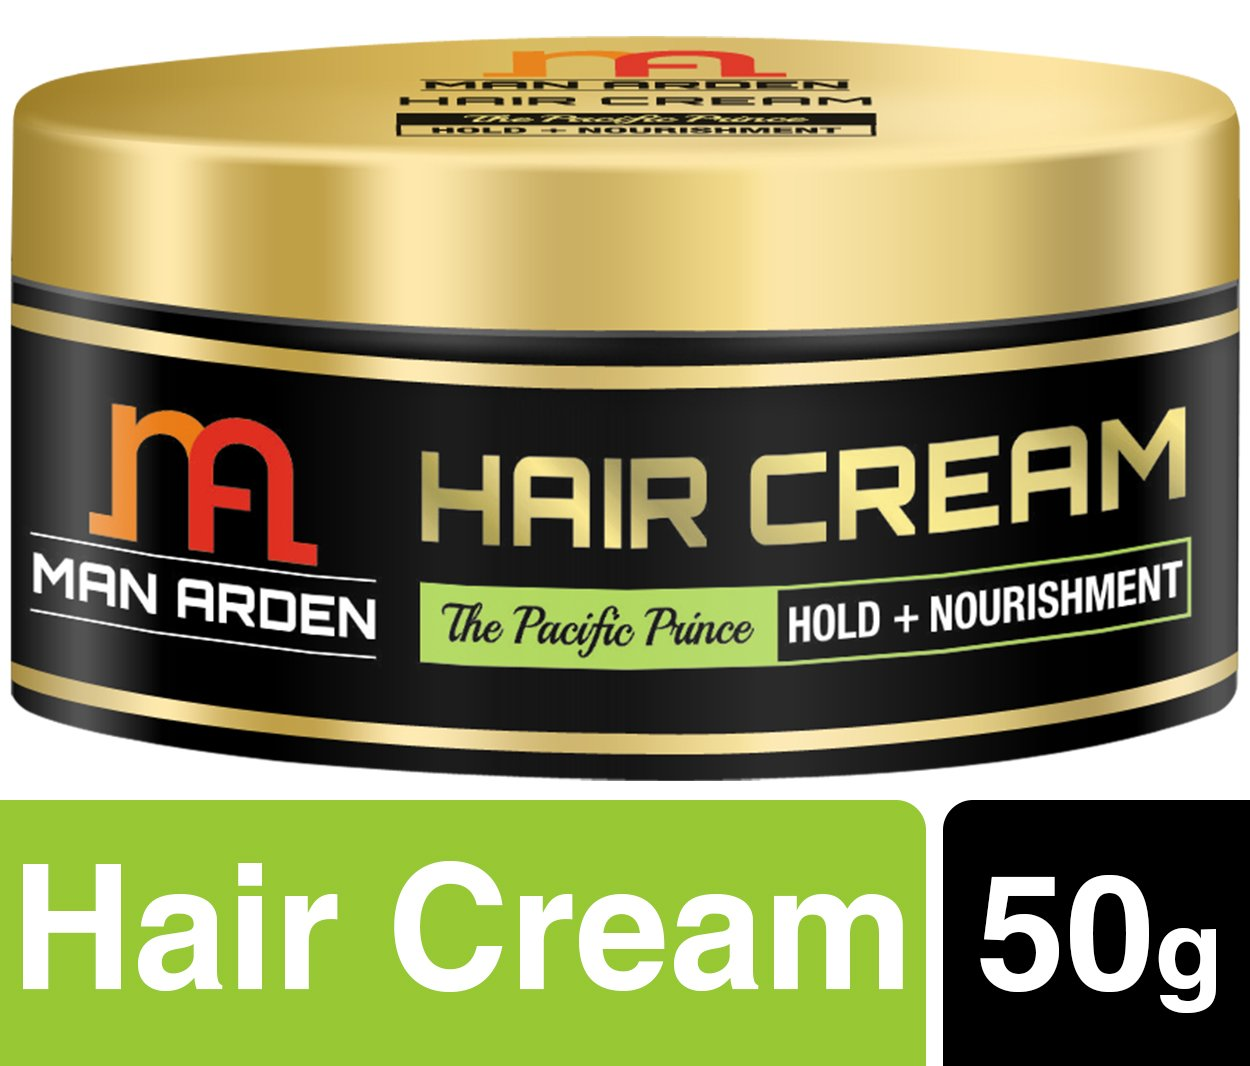 Man Arden Hair Styling Cream Pacific Prince (Hold + Nourishment) No Mineral Oil/Sulphate, 50gm product image